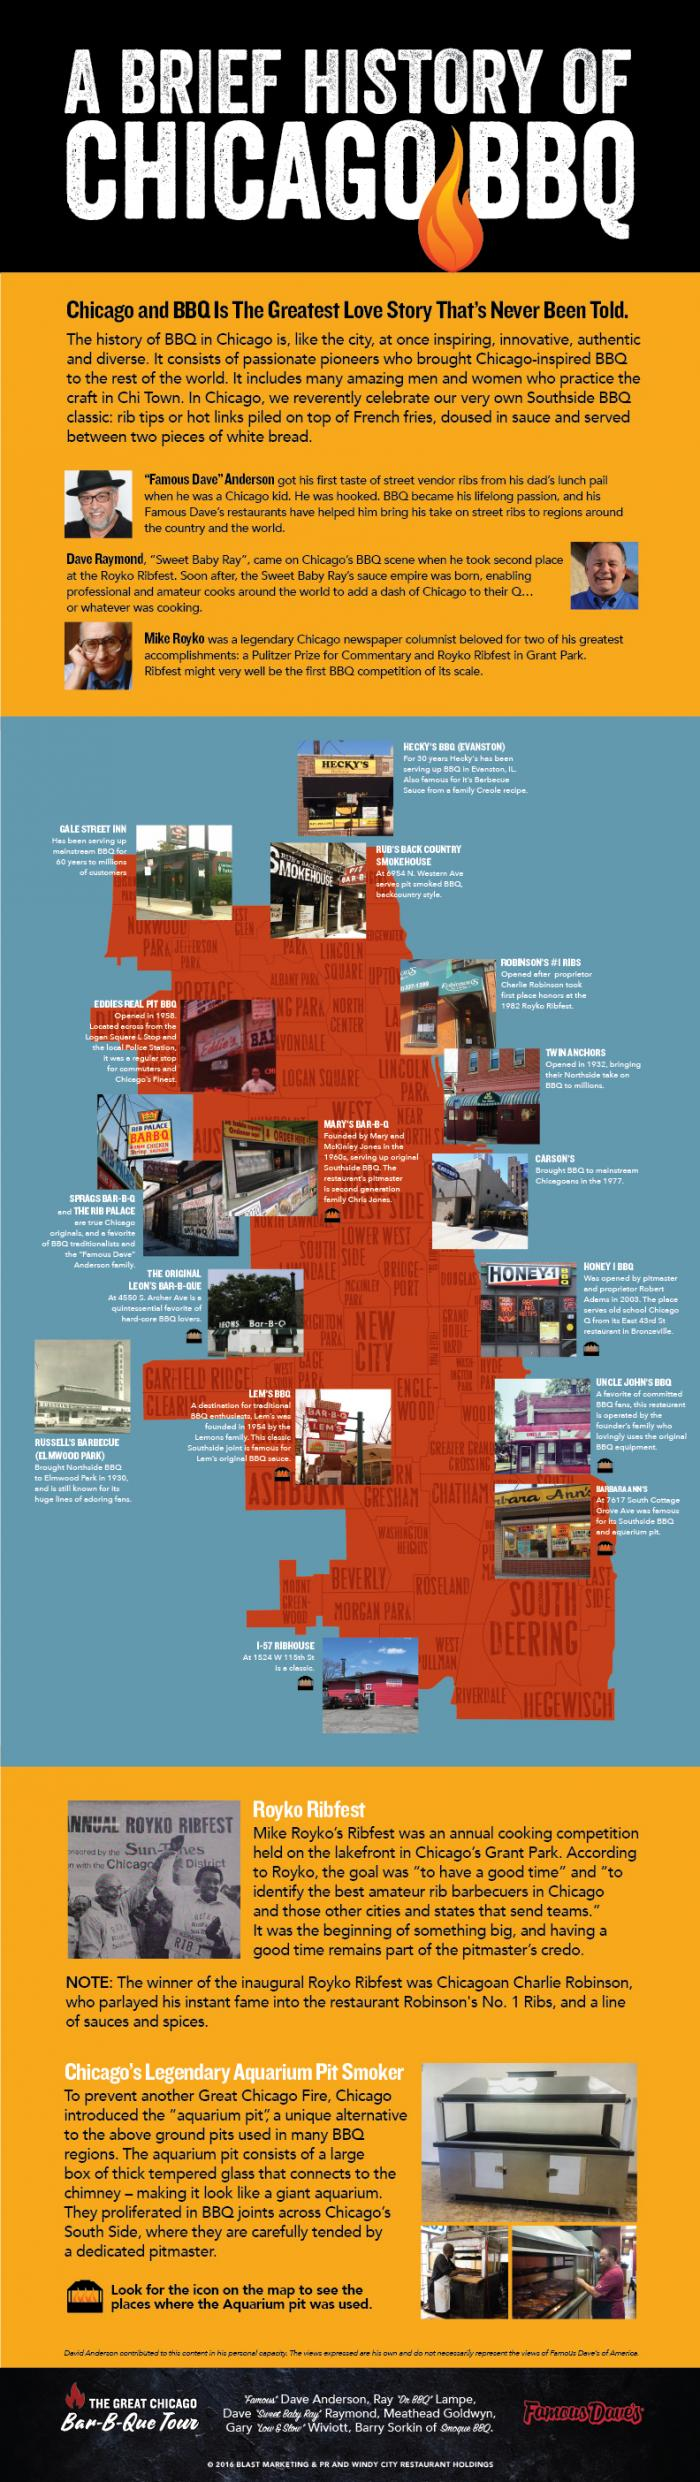 History of Chicago BBQ Infographic Map